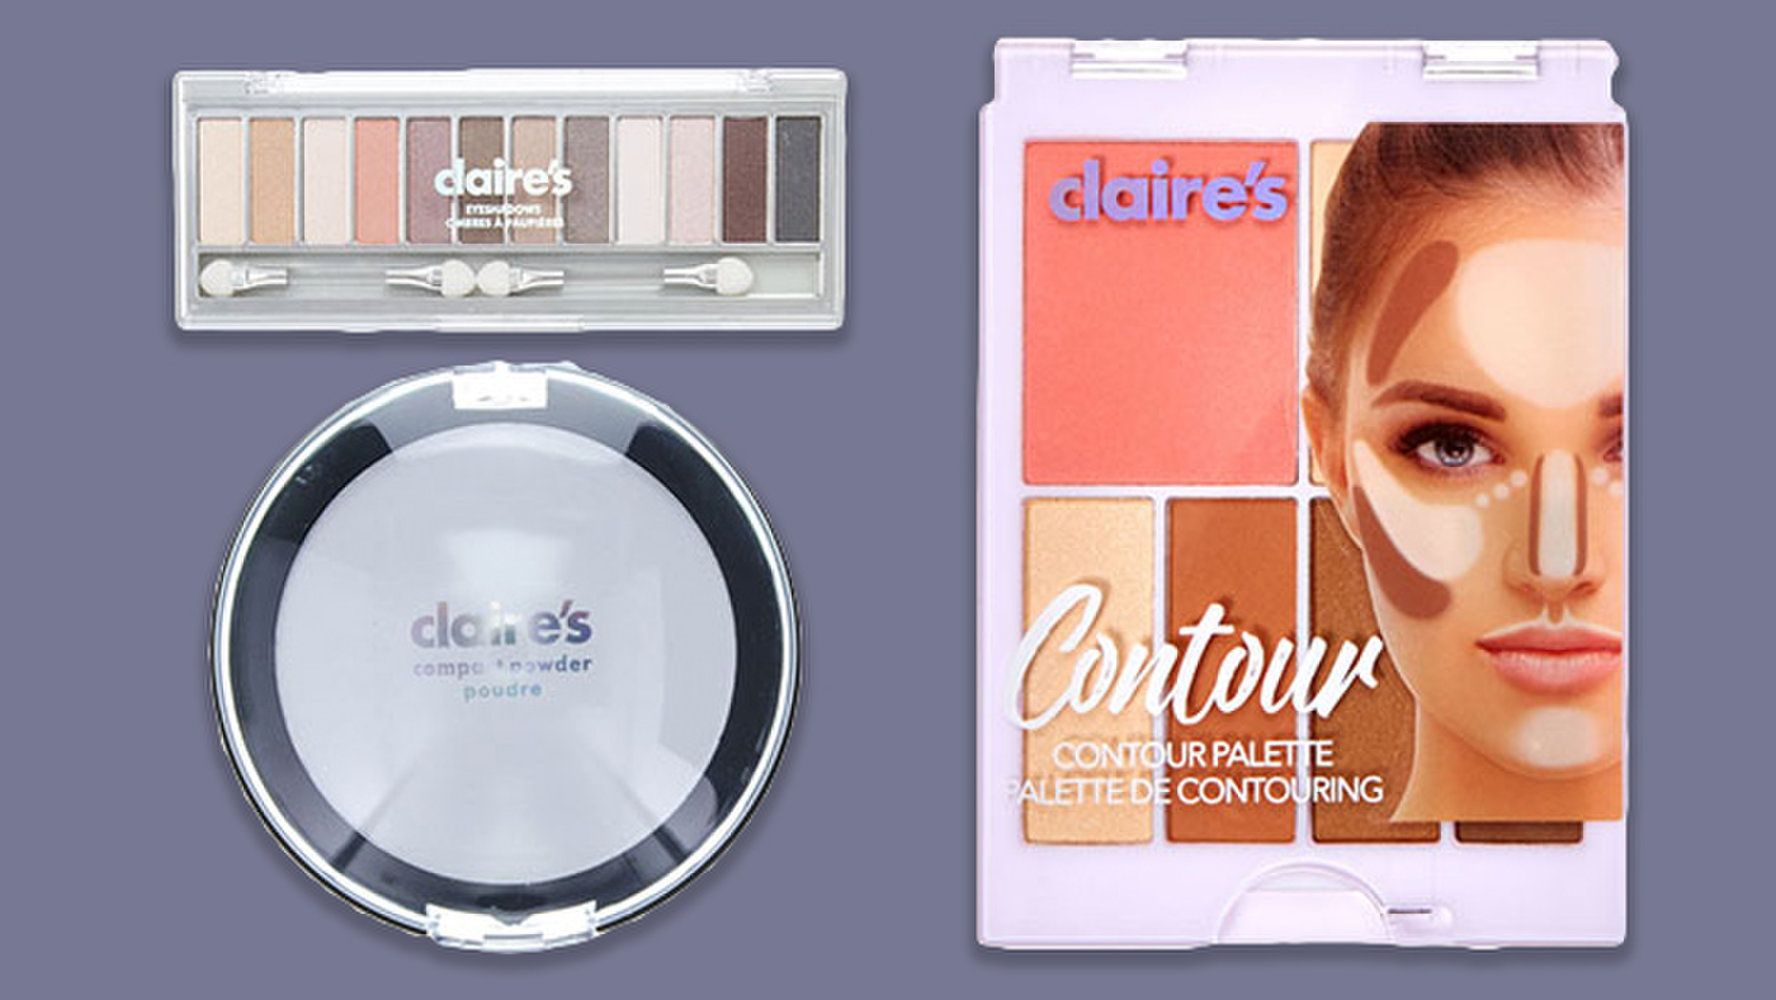 Claire's Recalls 3 Makeup Products for Possible Asbestos